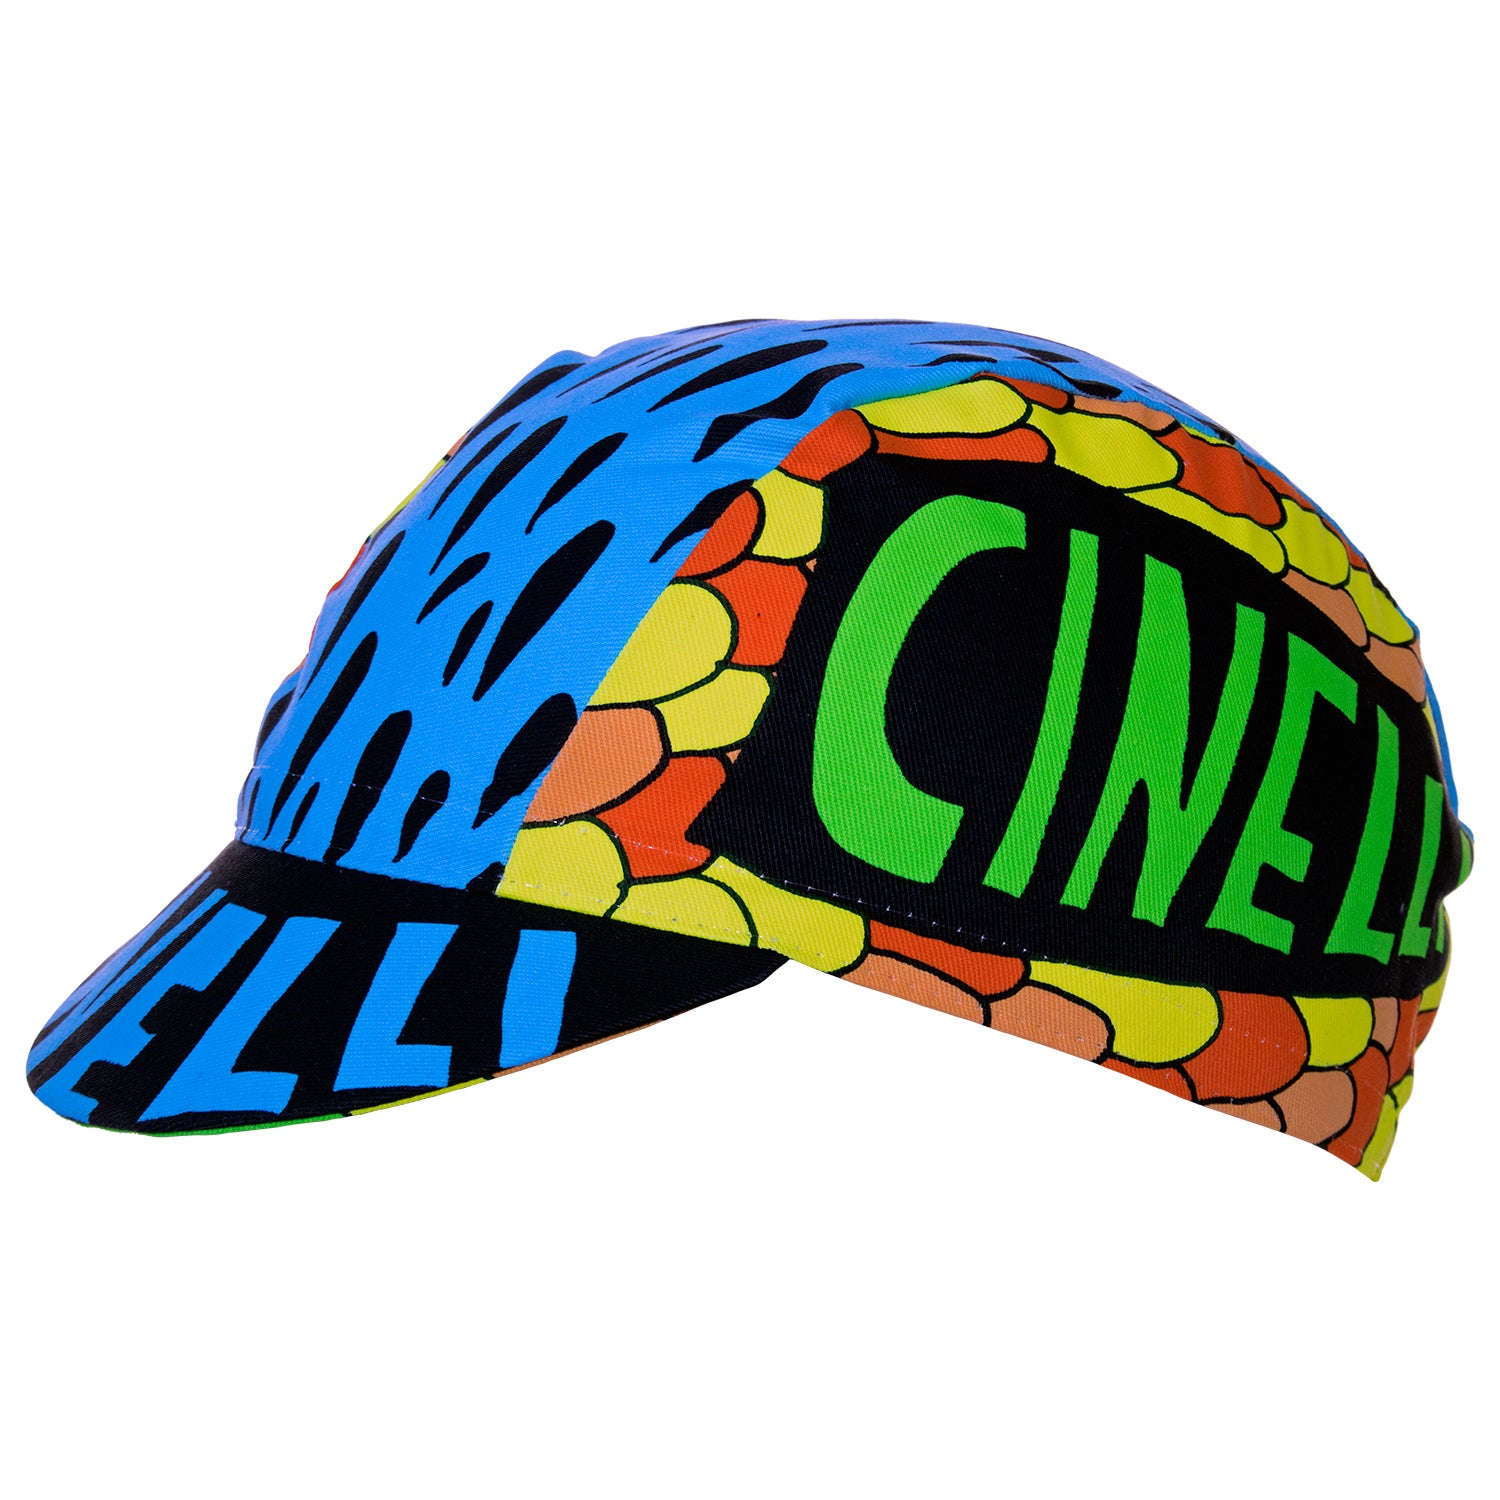 Cinelli Ana Benaroya Poseidon Cotton Cycling Cap